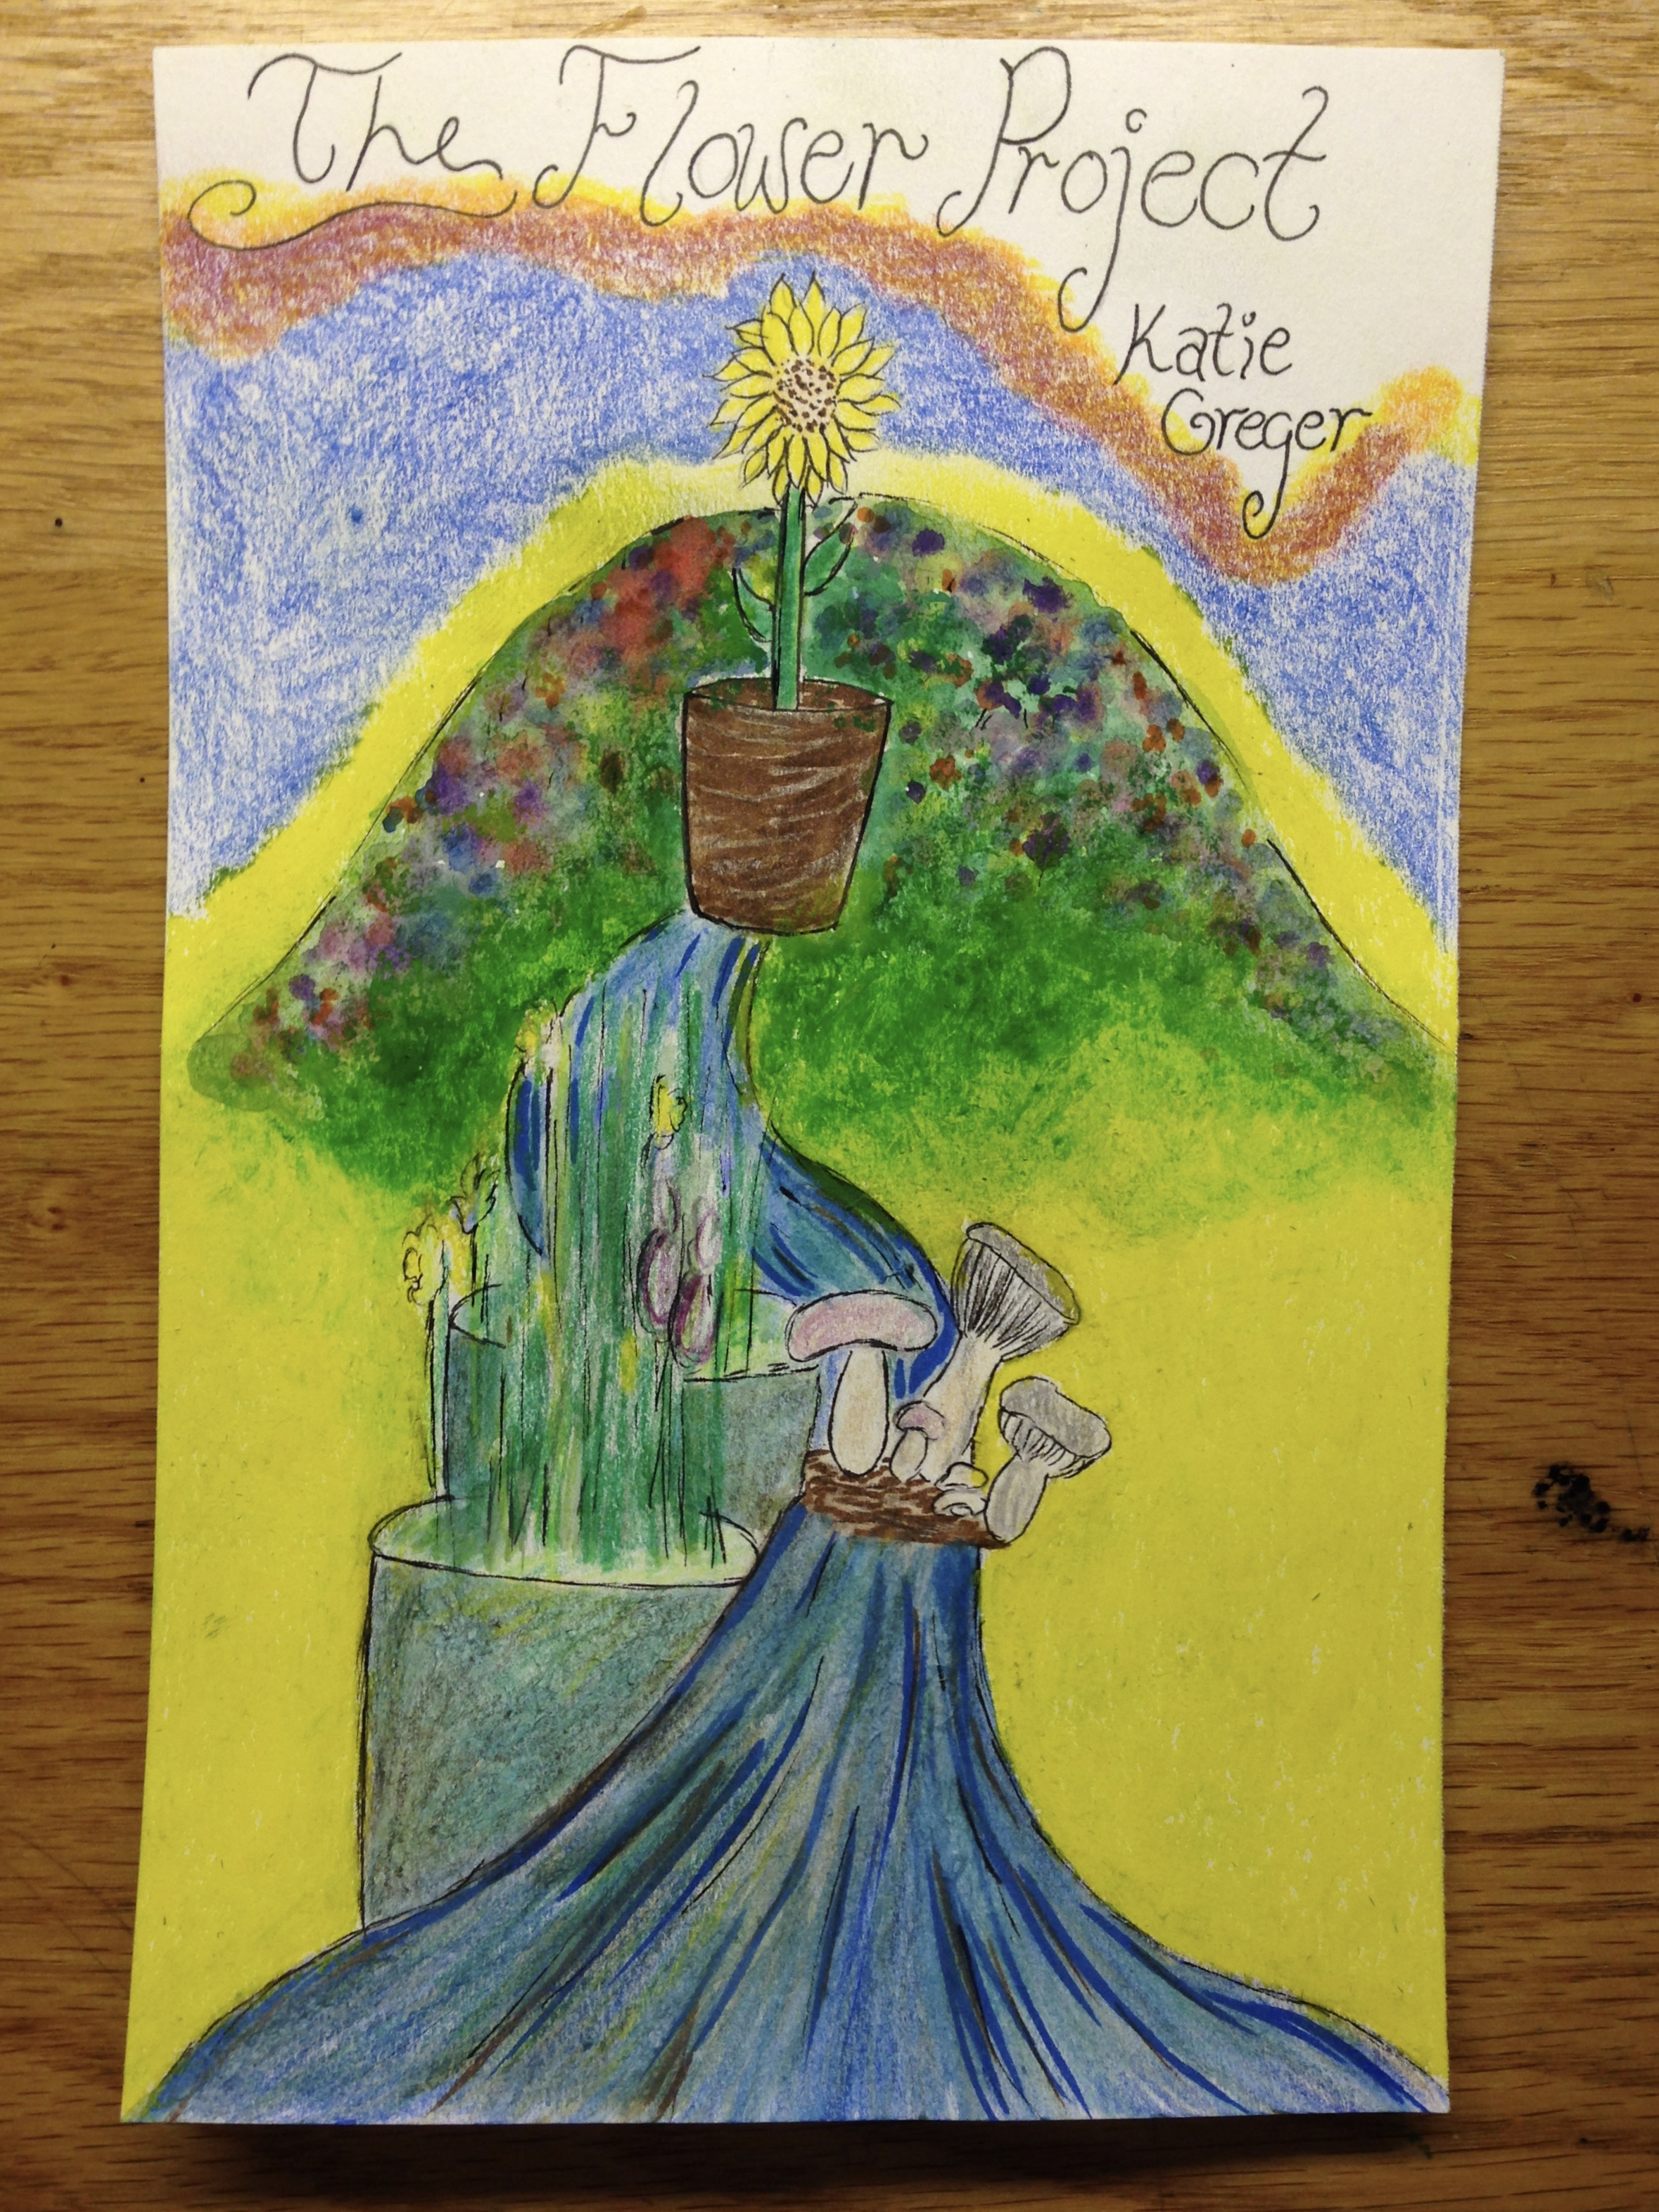 An artistic representation of the Flower Project by Katie Greger